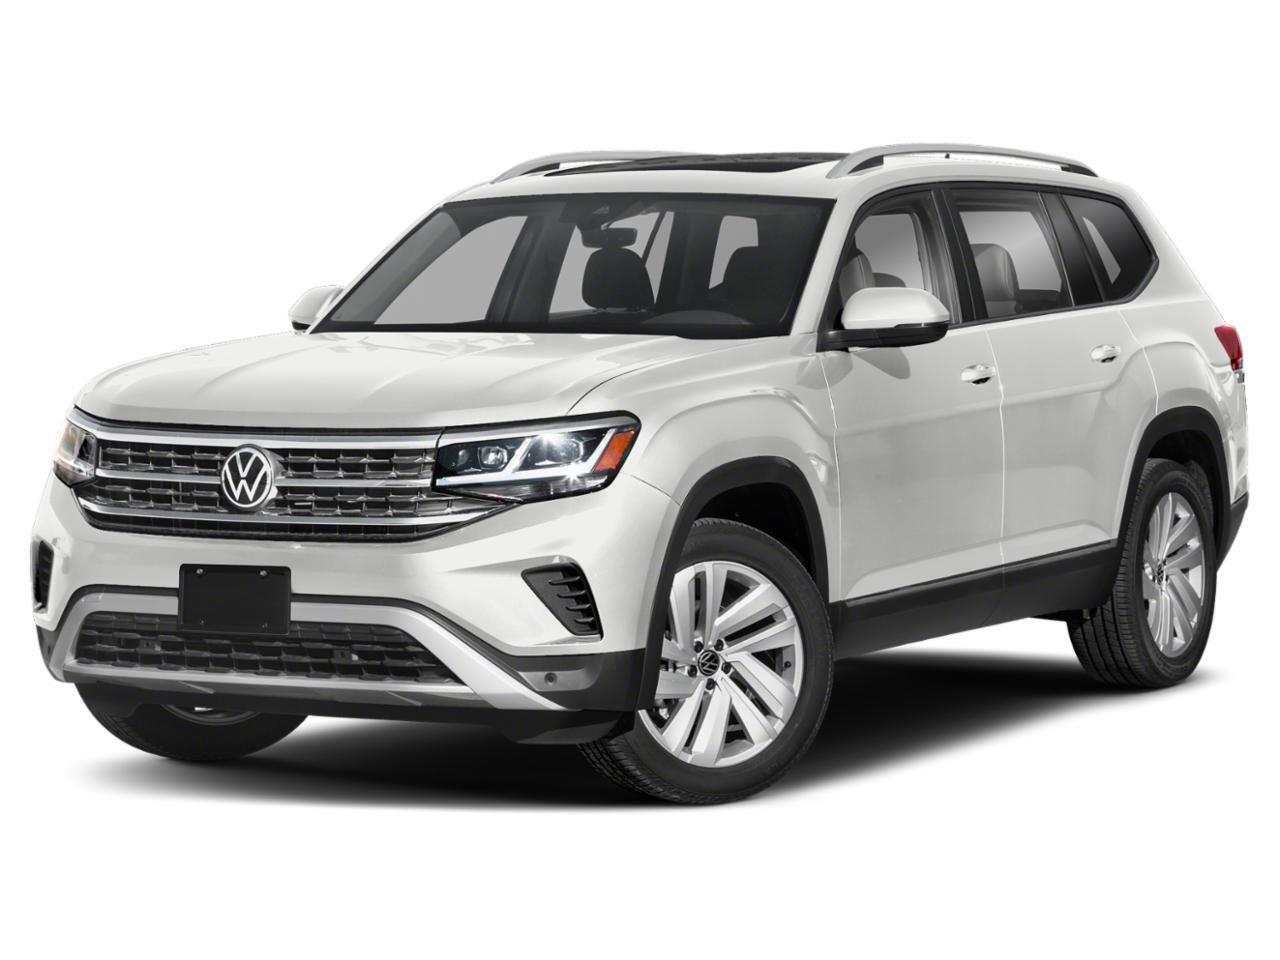 2021 Volkswagen Atlas 3.6L V6 SE w/Technology Walnut Creek CA